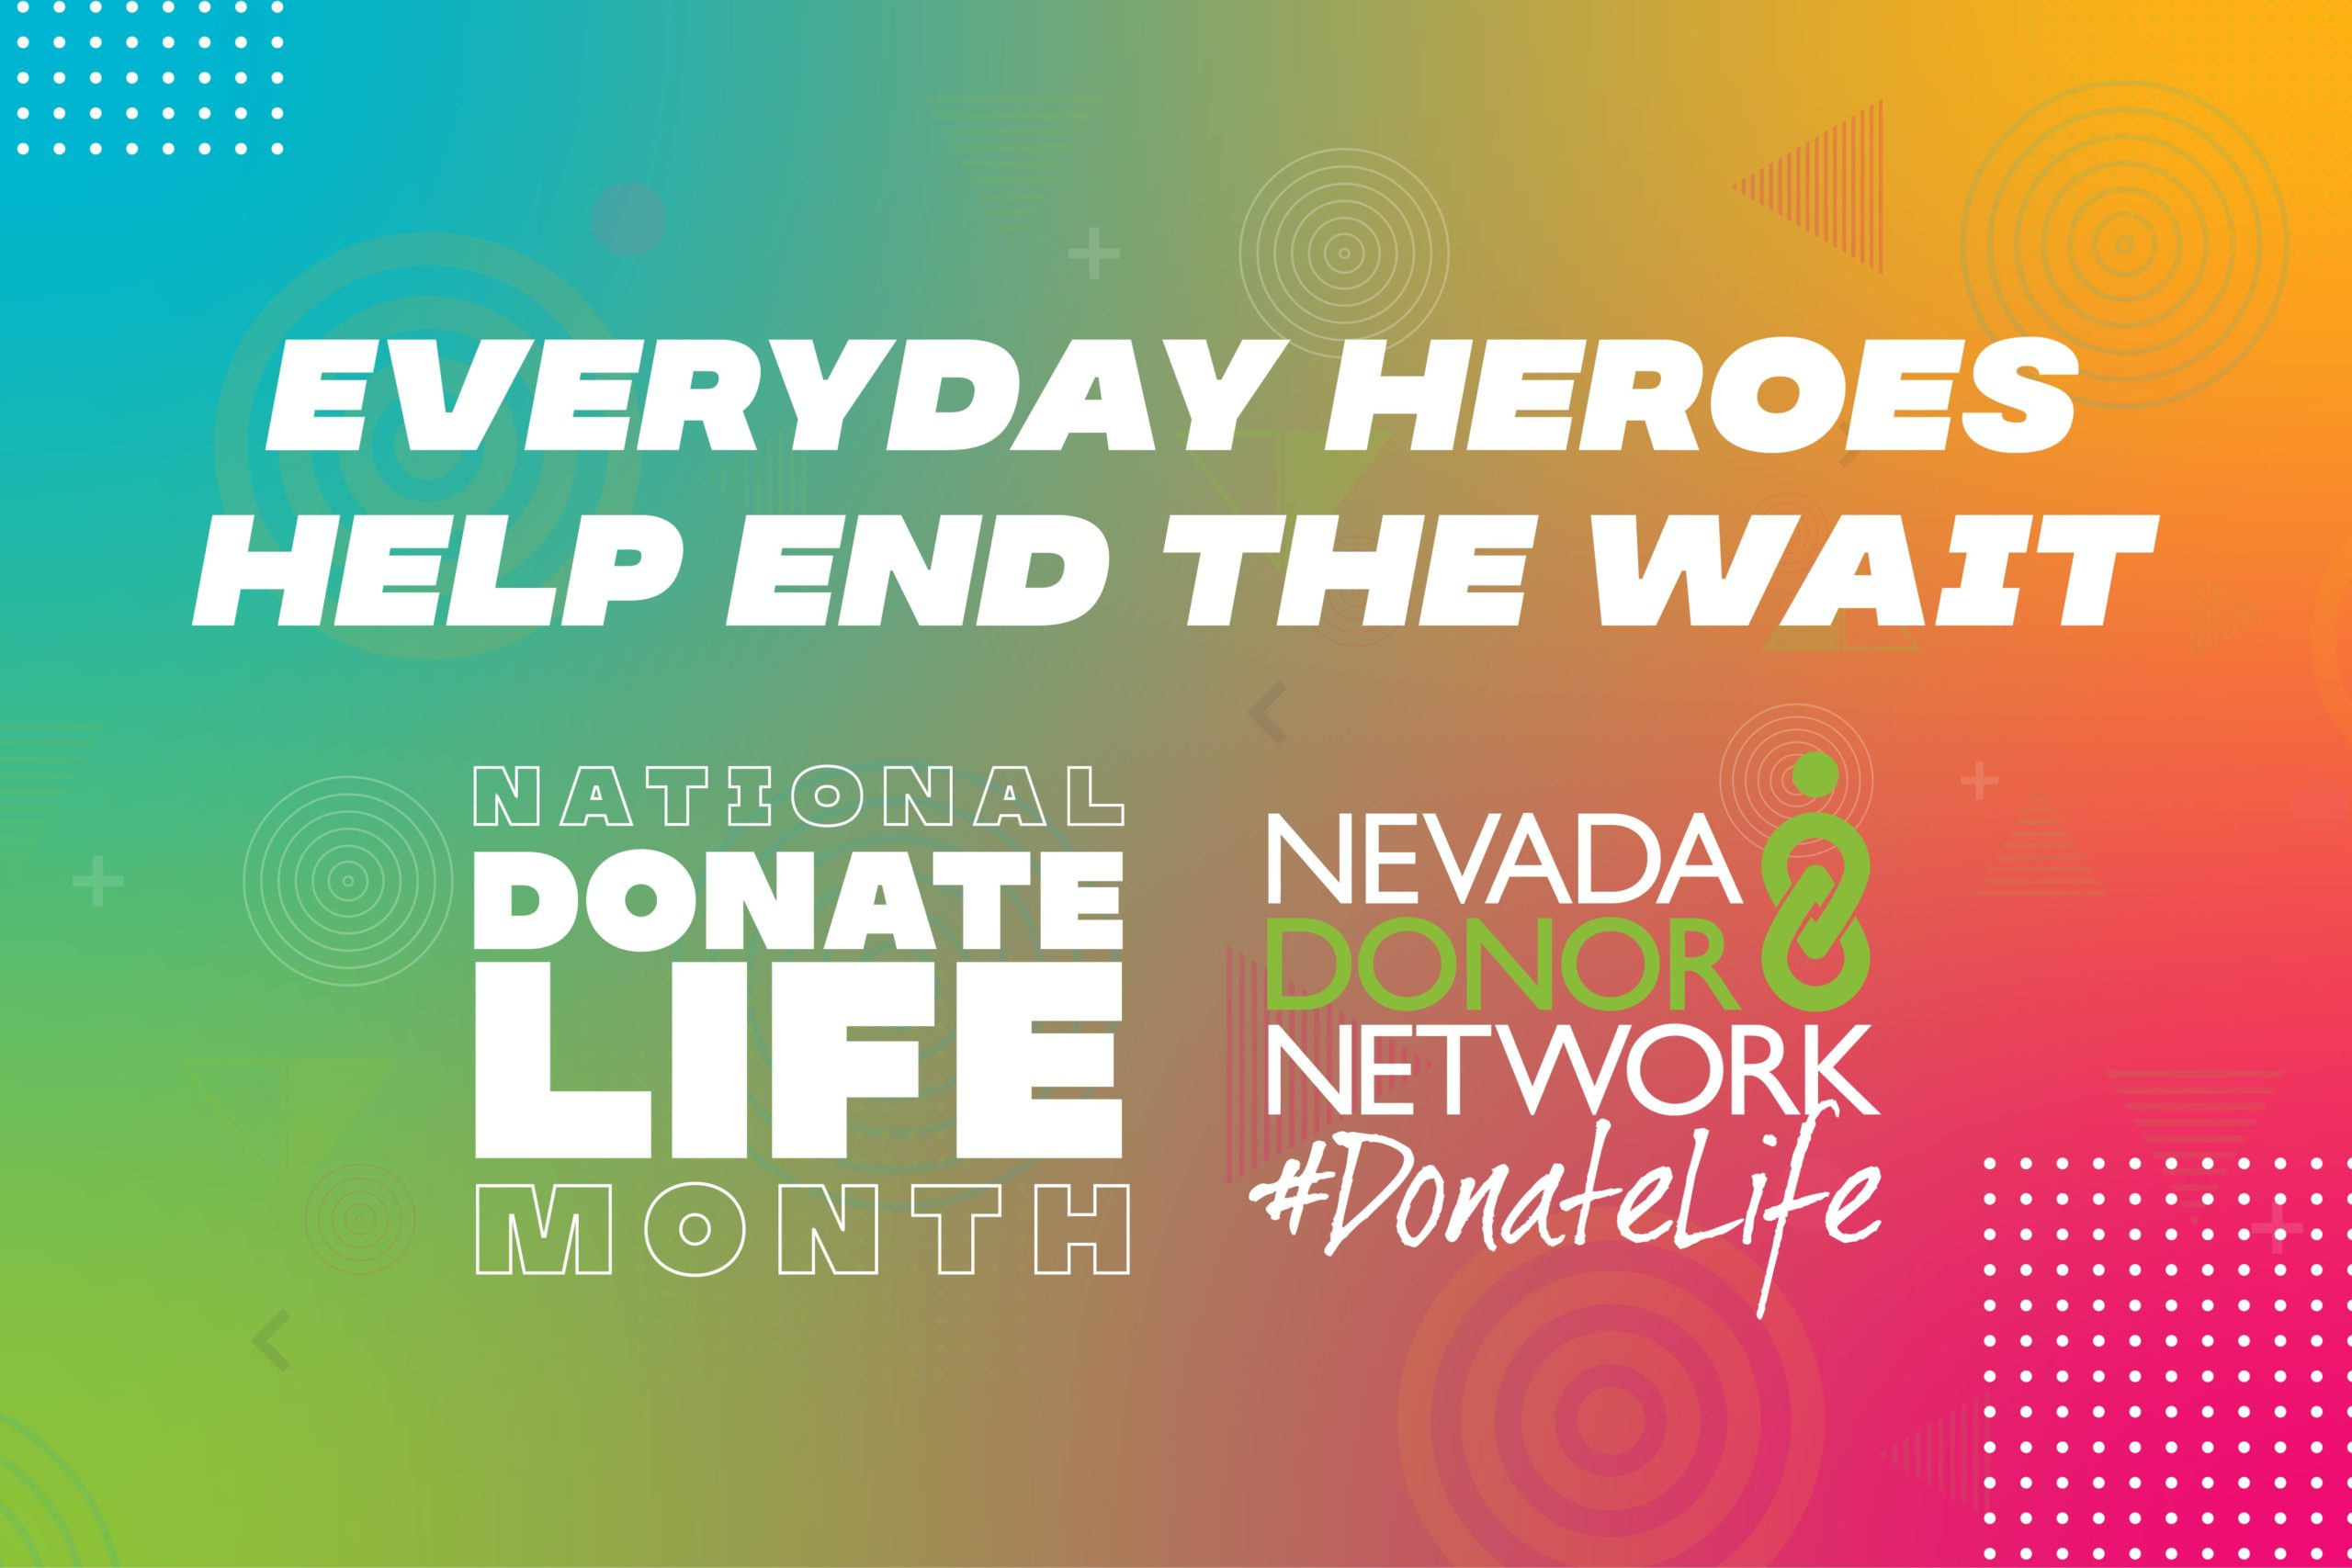 National Donate Life Month: Help END THE WAIT for Nevadans waiting for a second chance at life